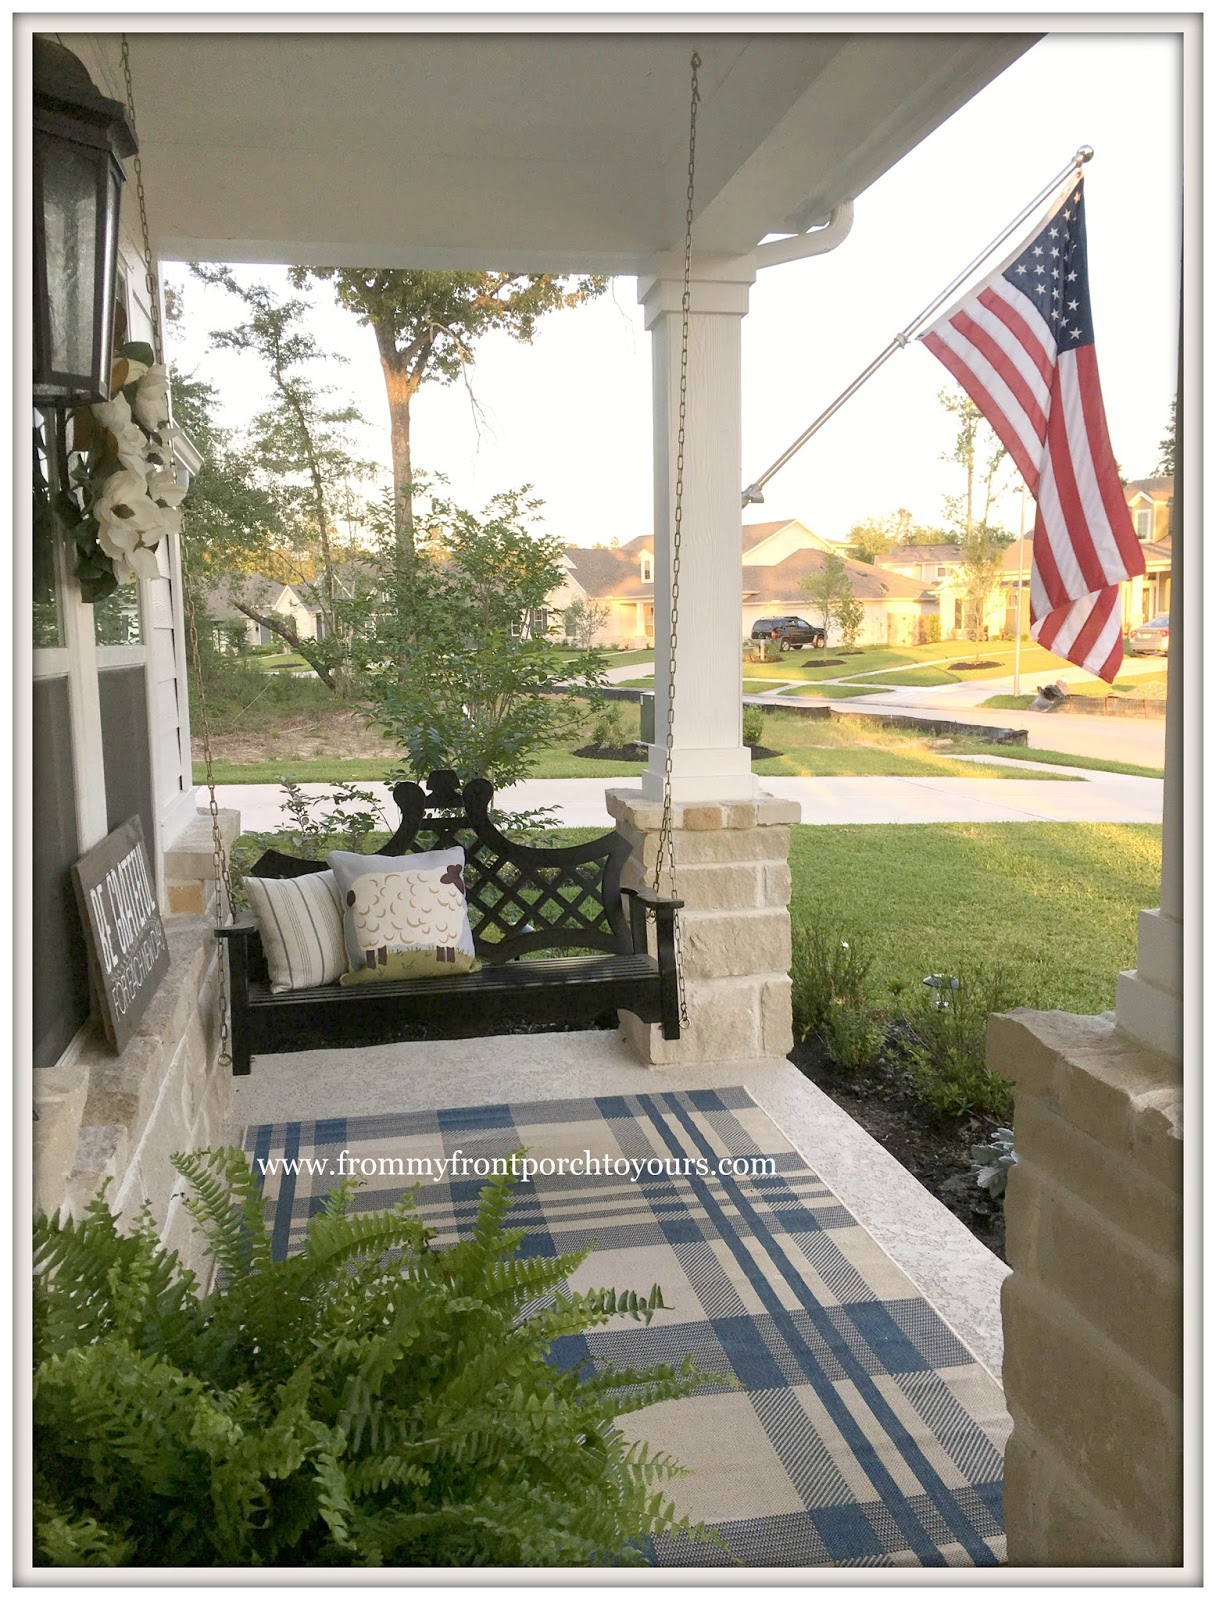 From My Front Porch To Yours: Farmhouse Front Porch Updates Pertaining To American Flag Porch Swings (View 15 of 25)